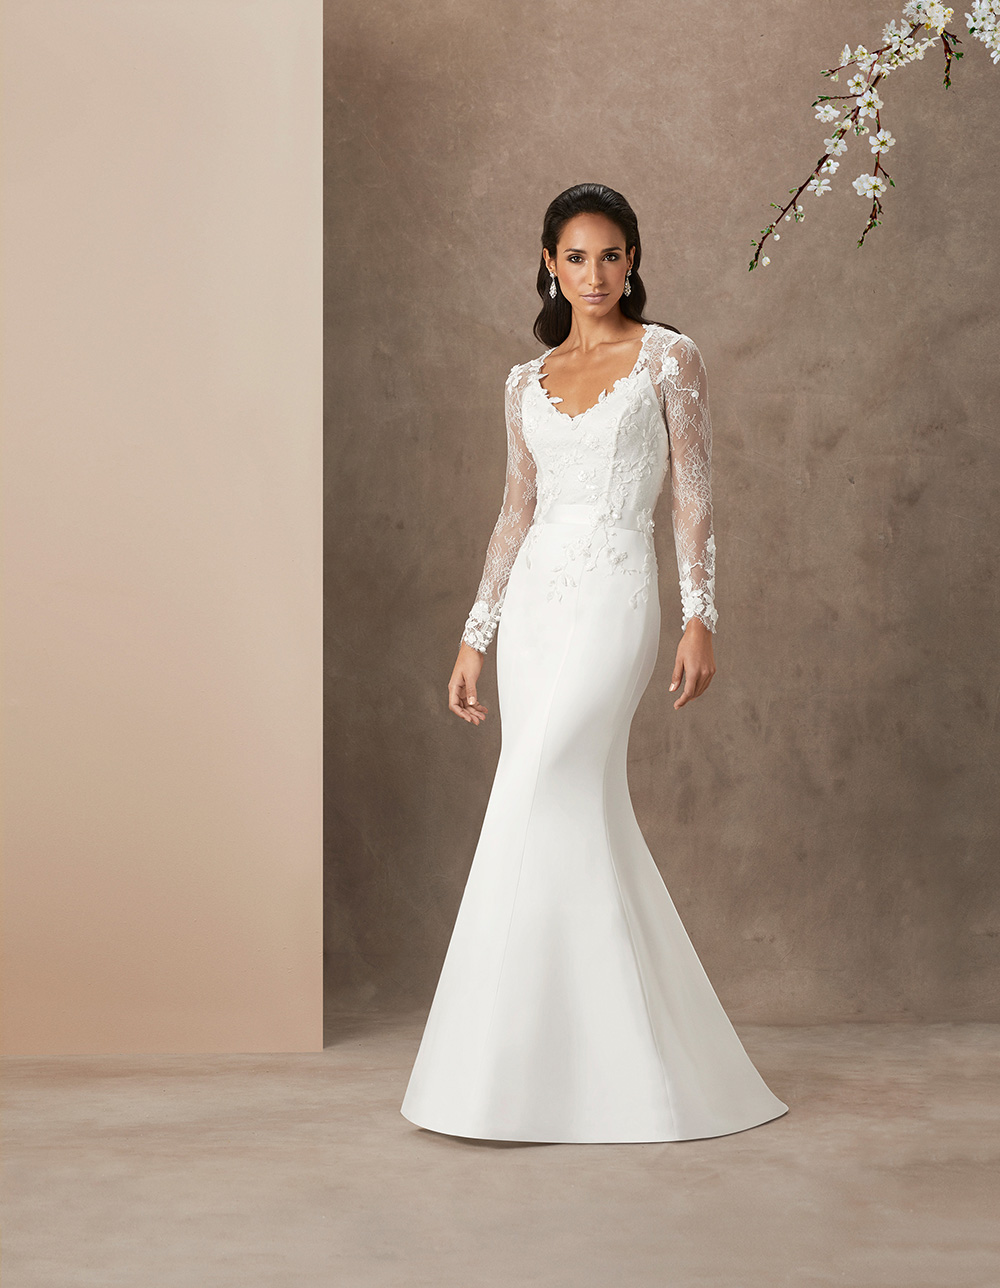 Love Heart luxury wedding gowns by Caroline Castigliano